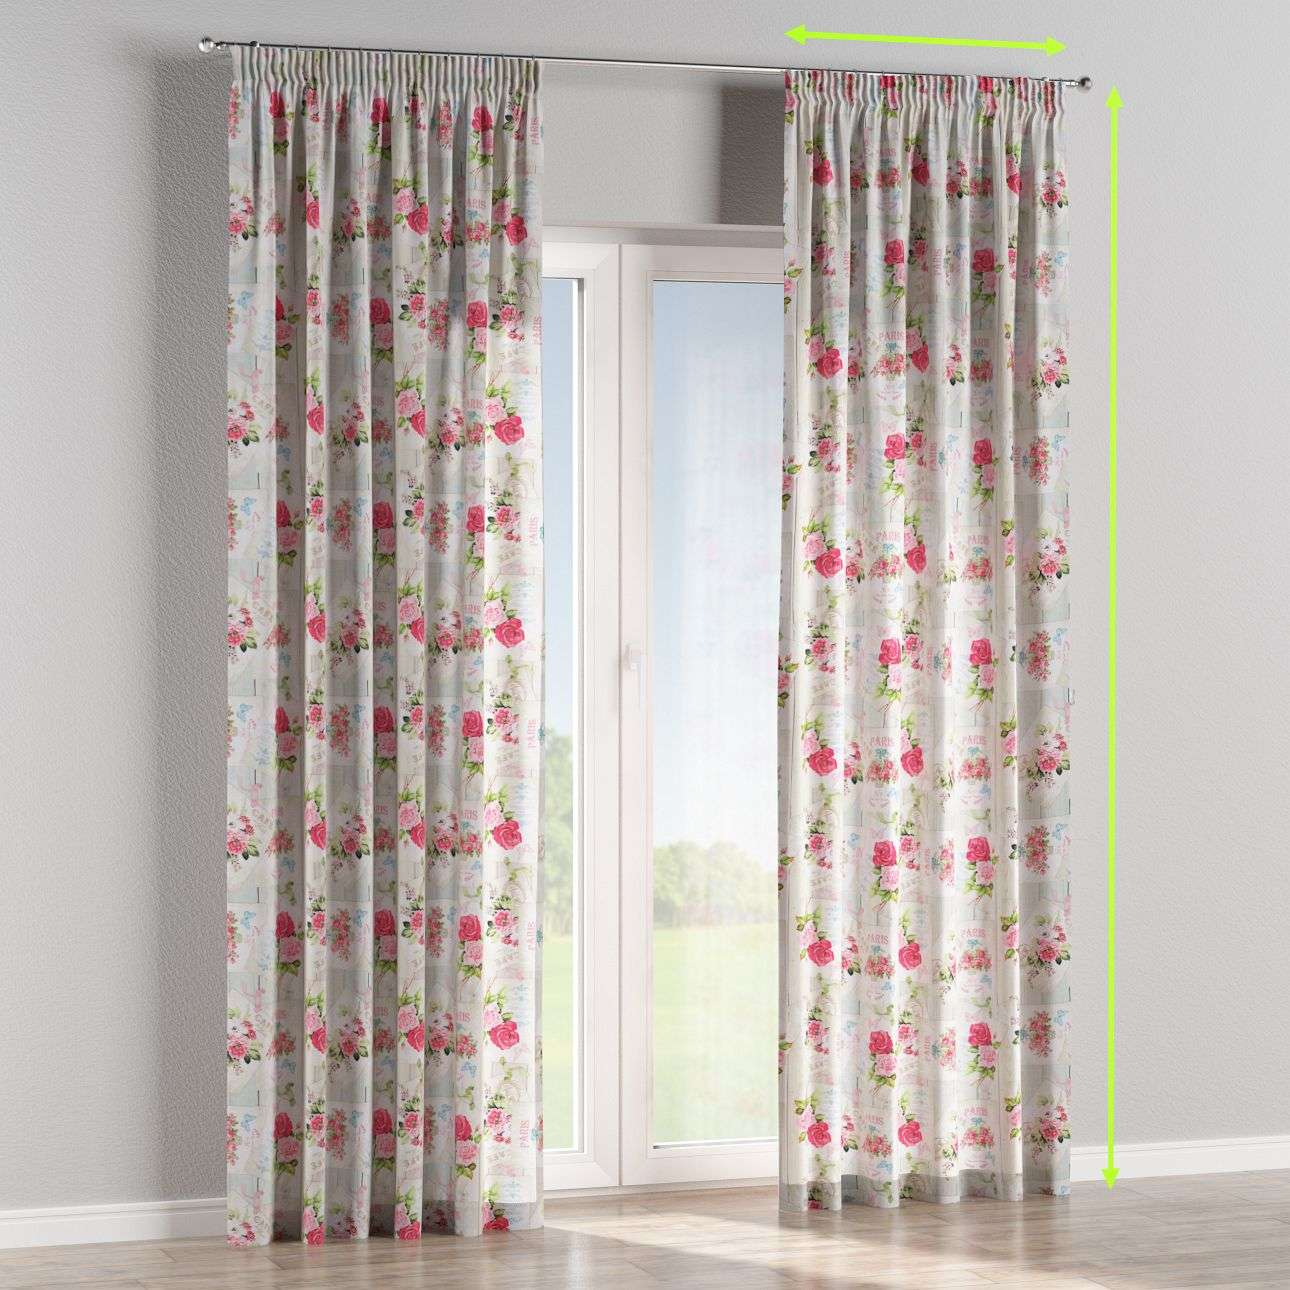 Pencil pleat lined curtains in collection Ashley, fabric: 140-19